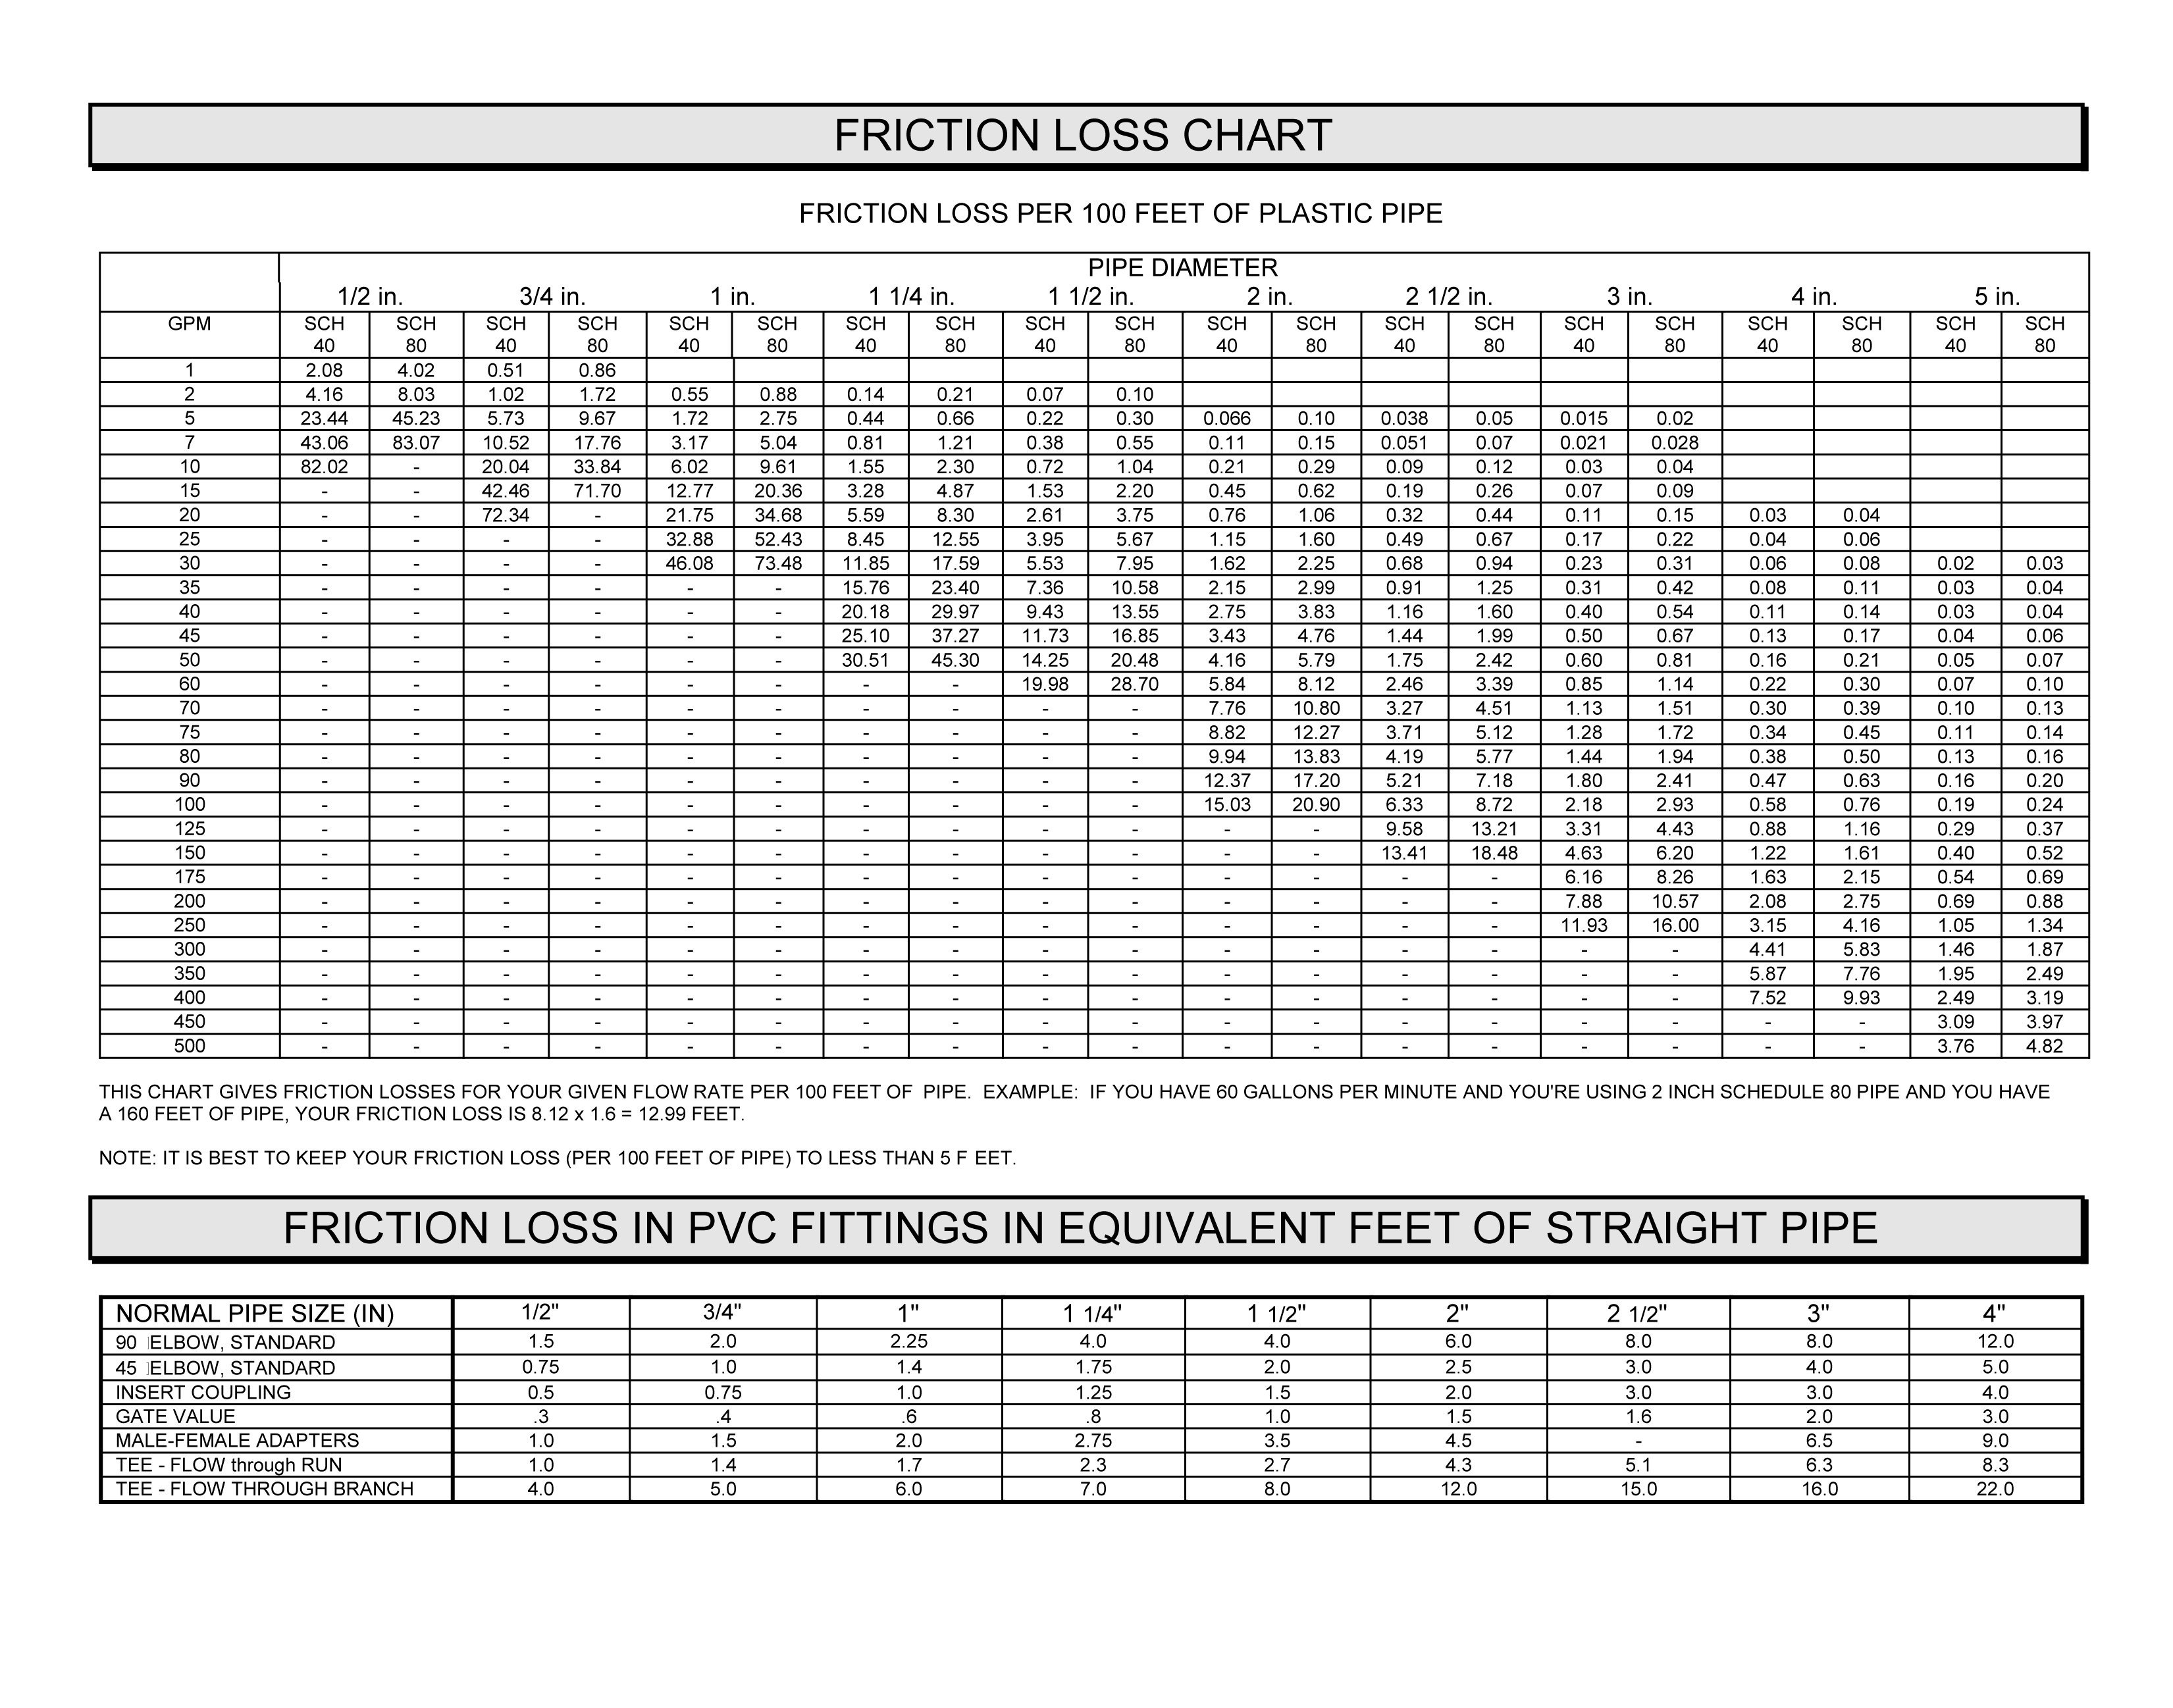 FRICTION LOSS CHART 15